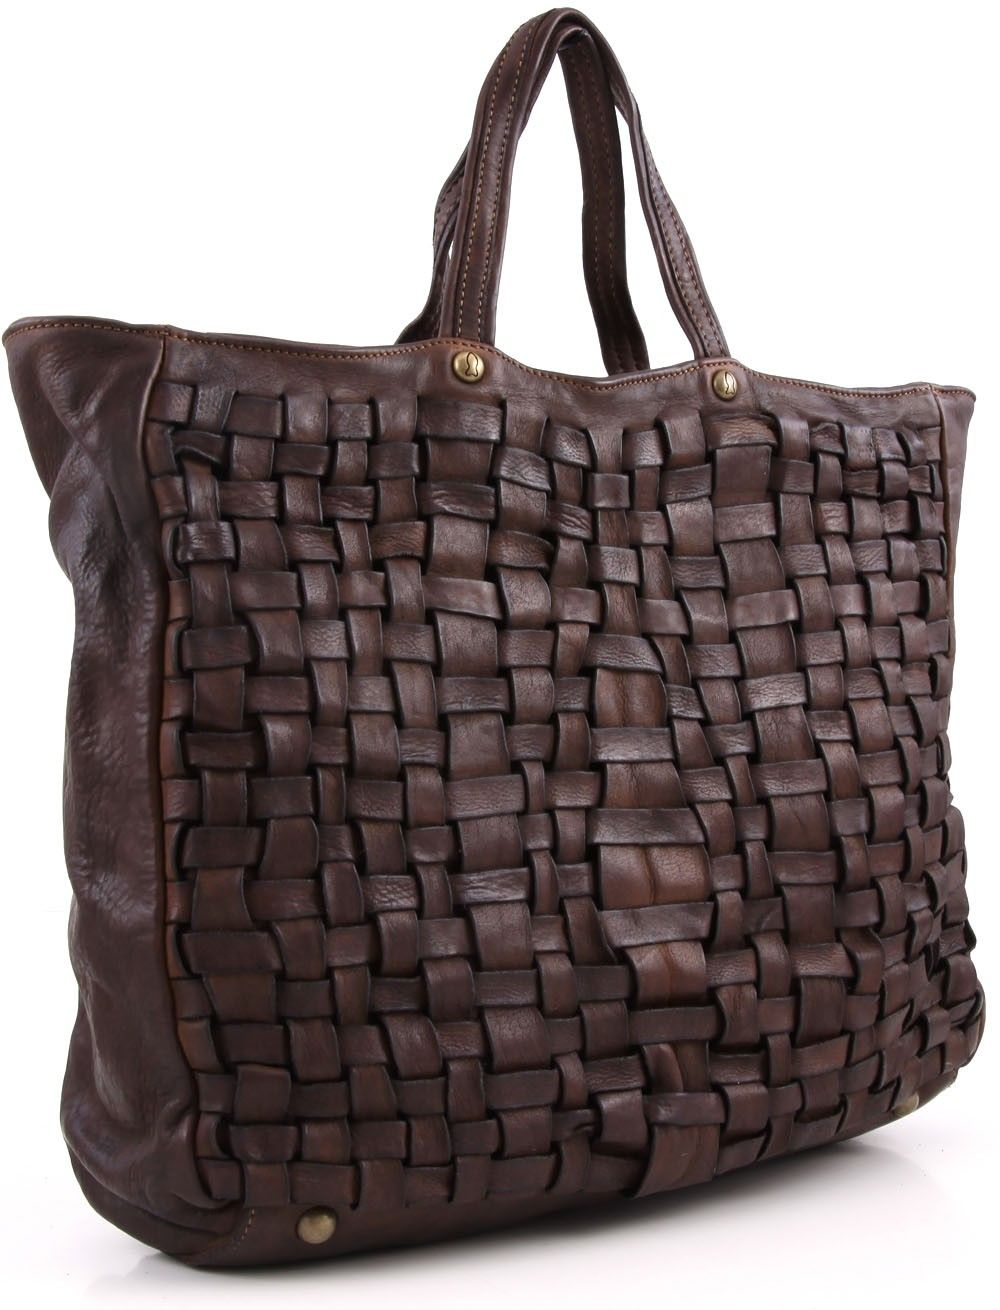 Campomaggi Lavata Satchel Leather dark-brown 37 cm - C1303BISVL-1701 - Designer Bags Shop - wardow.com